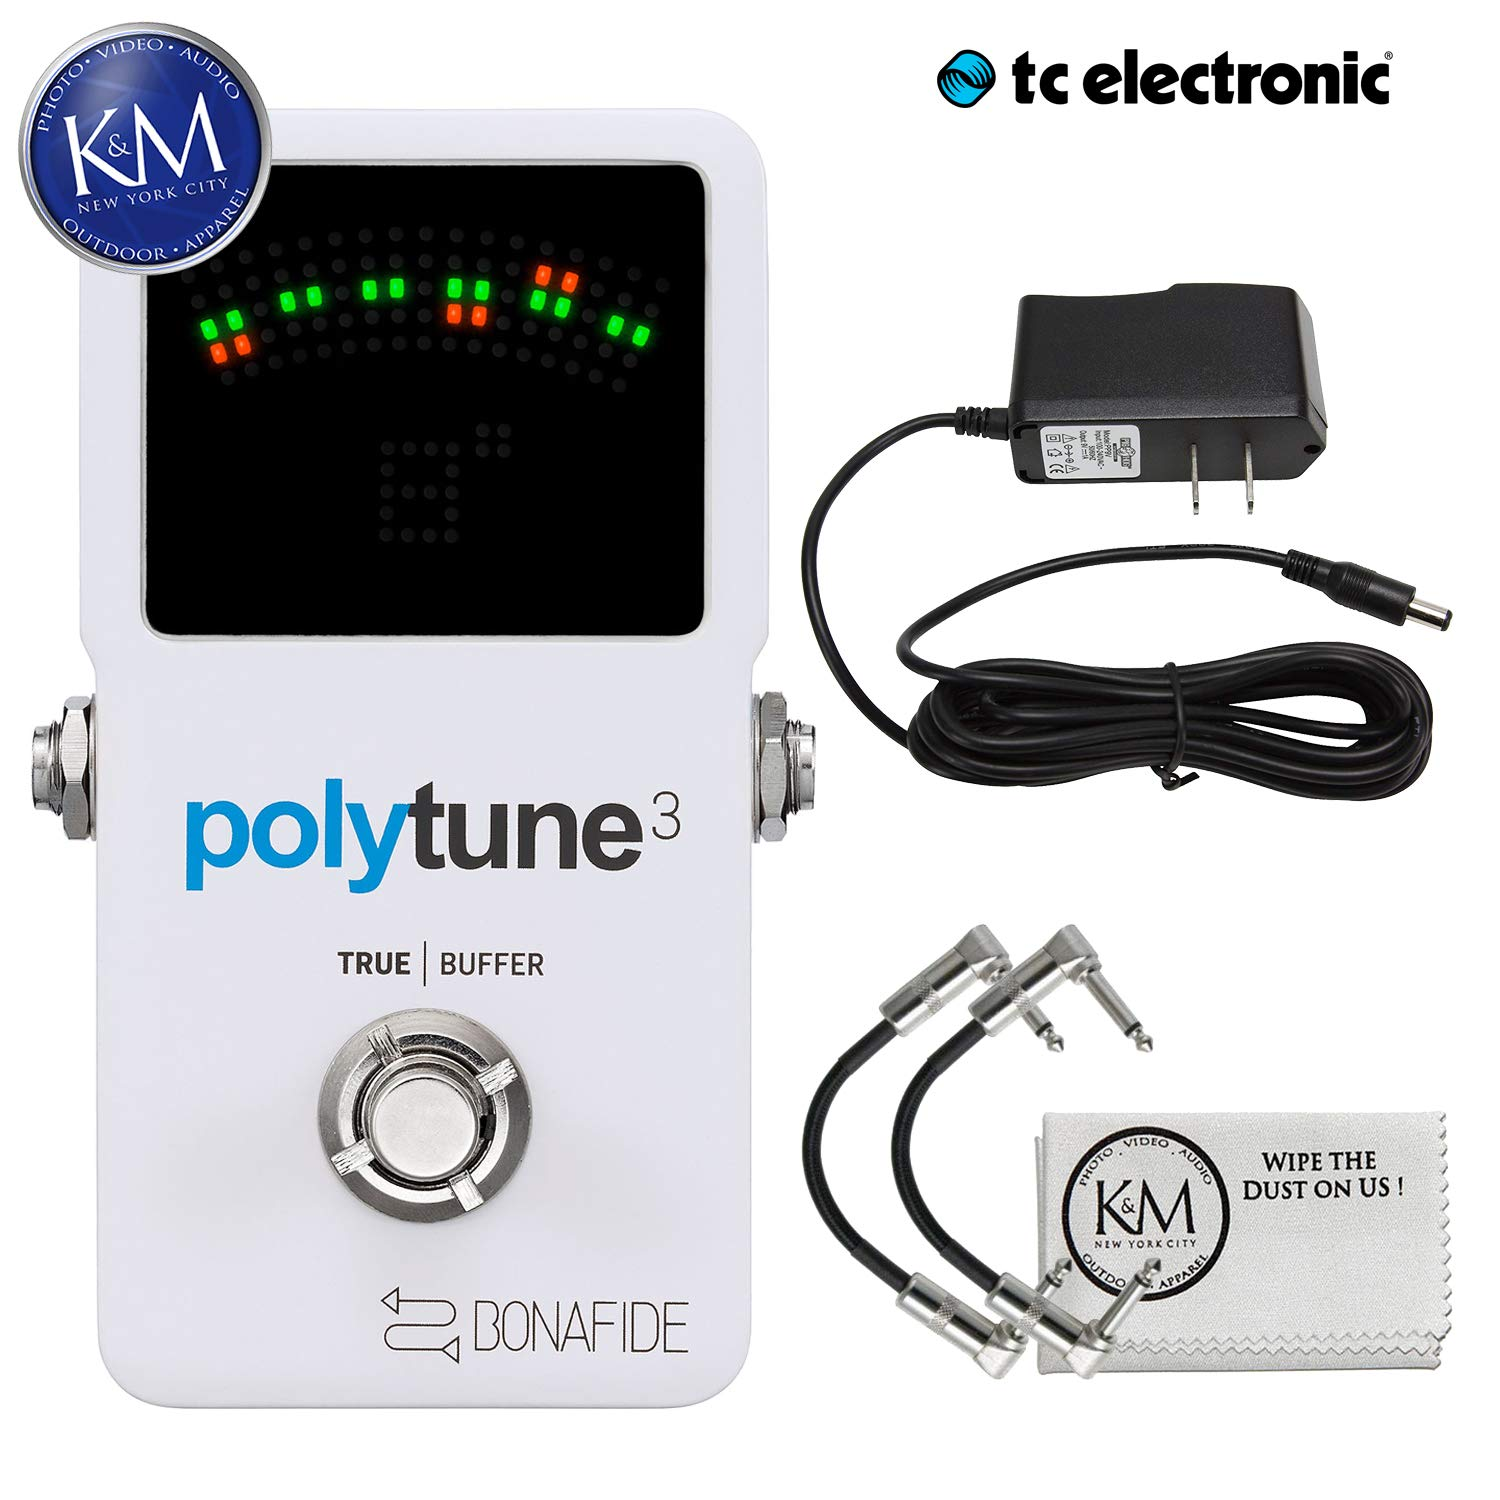 TC Electronic 966130001 PolyTune 3 Polyphonic LED Guitar Tuner Pedal with ac adapter and a Pair of Pedalboard Patch Cables